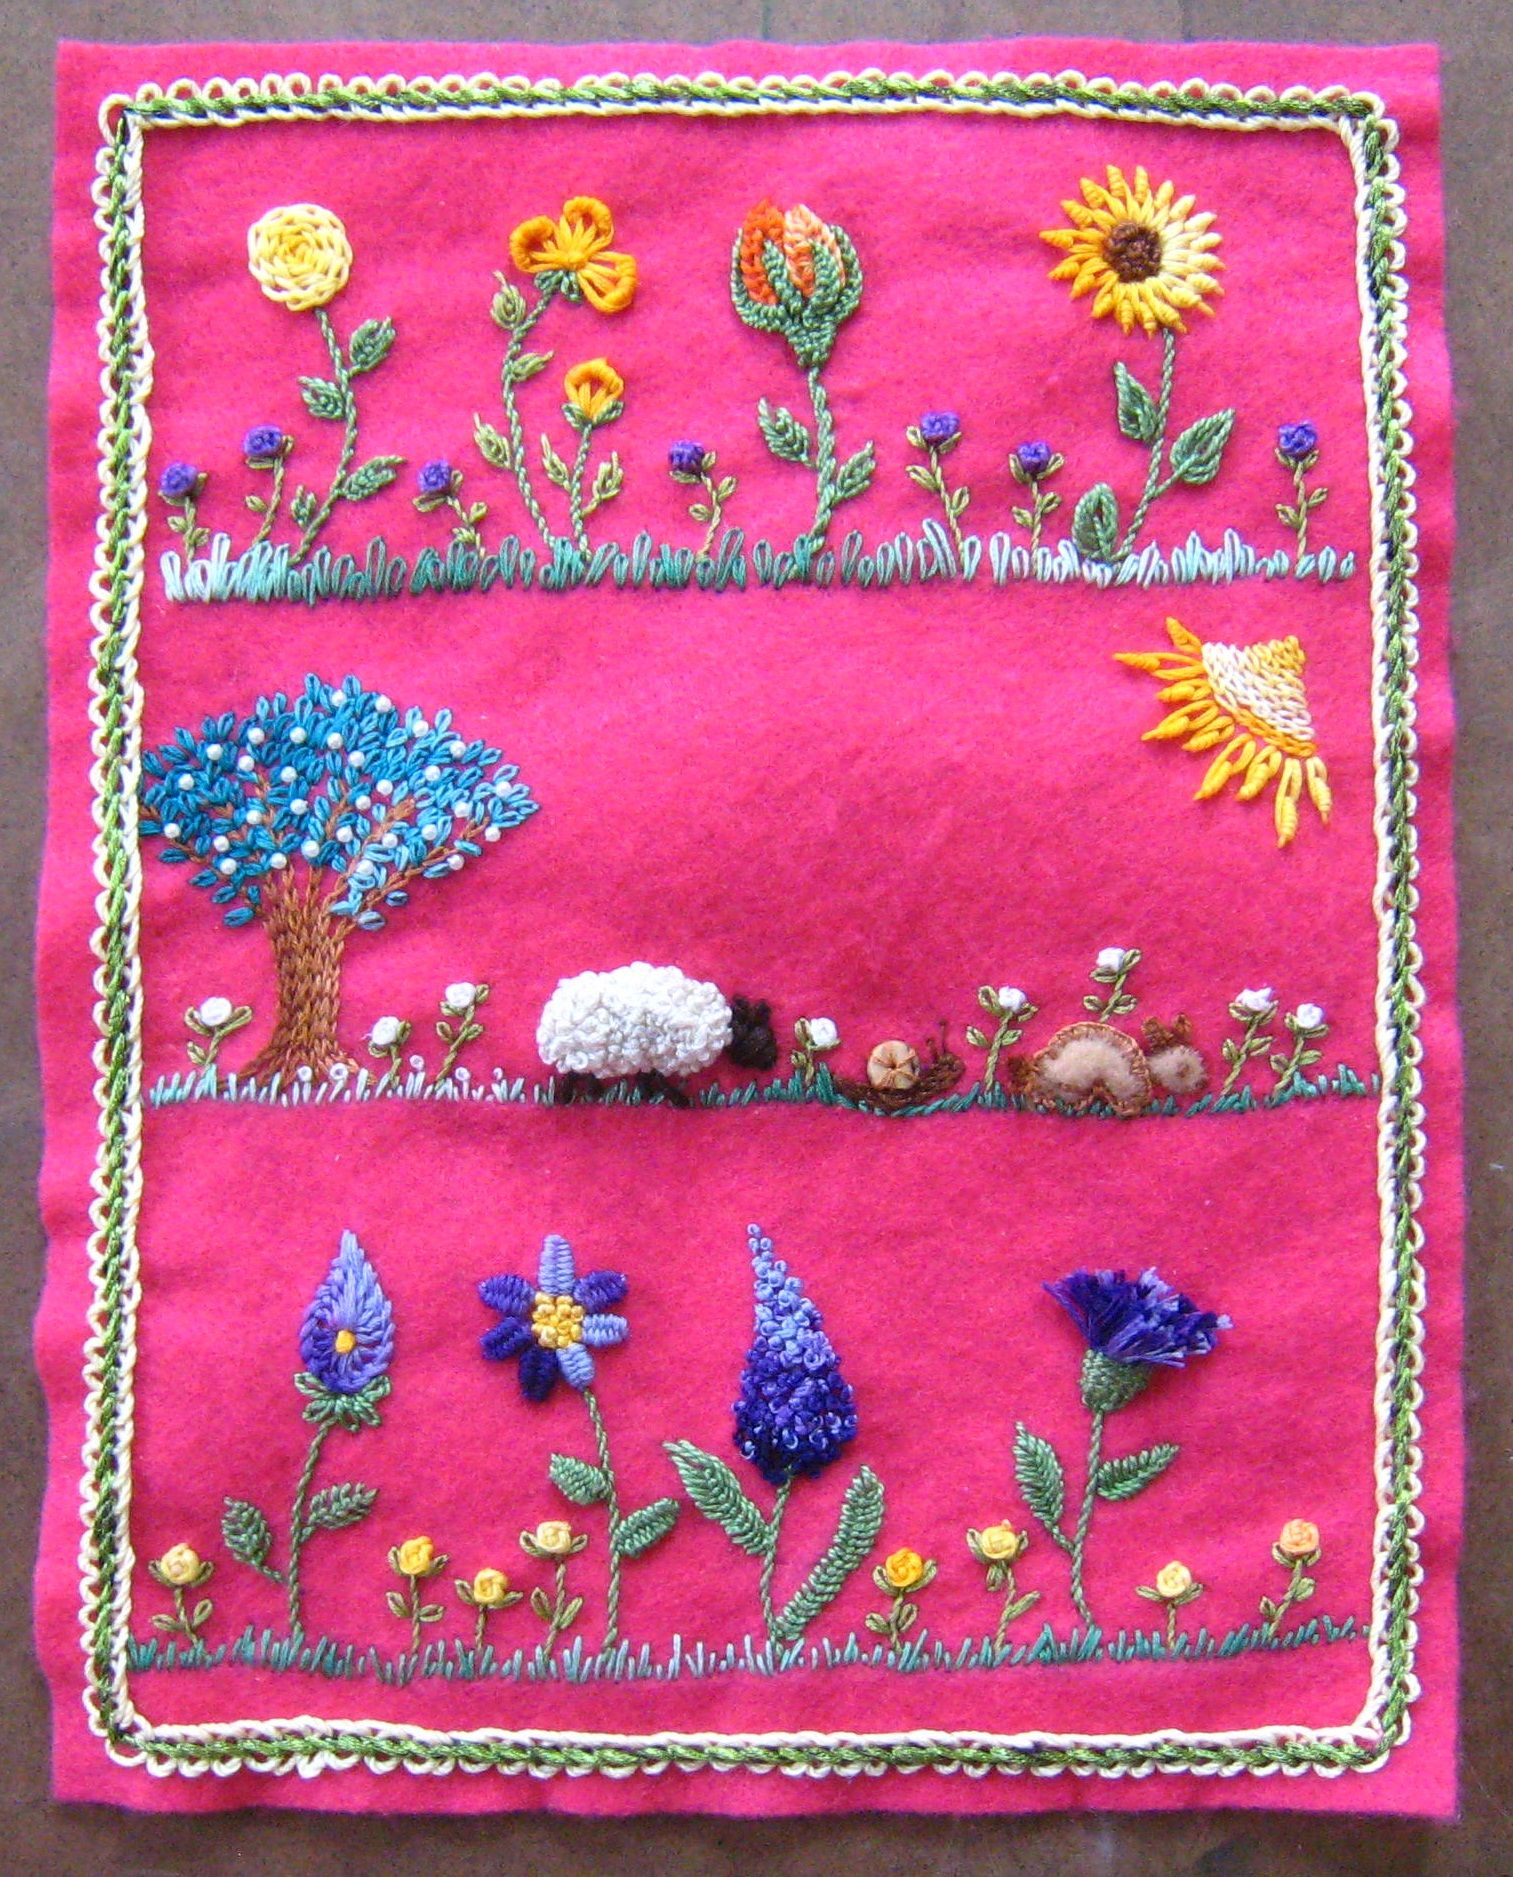 Many stitches and stump work my embroidery pinterest